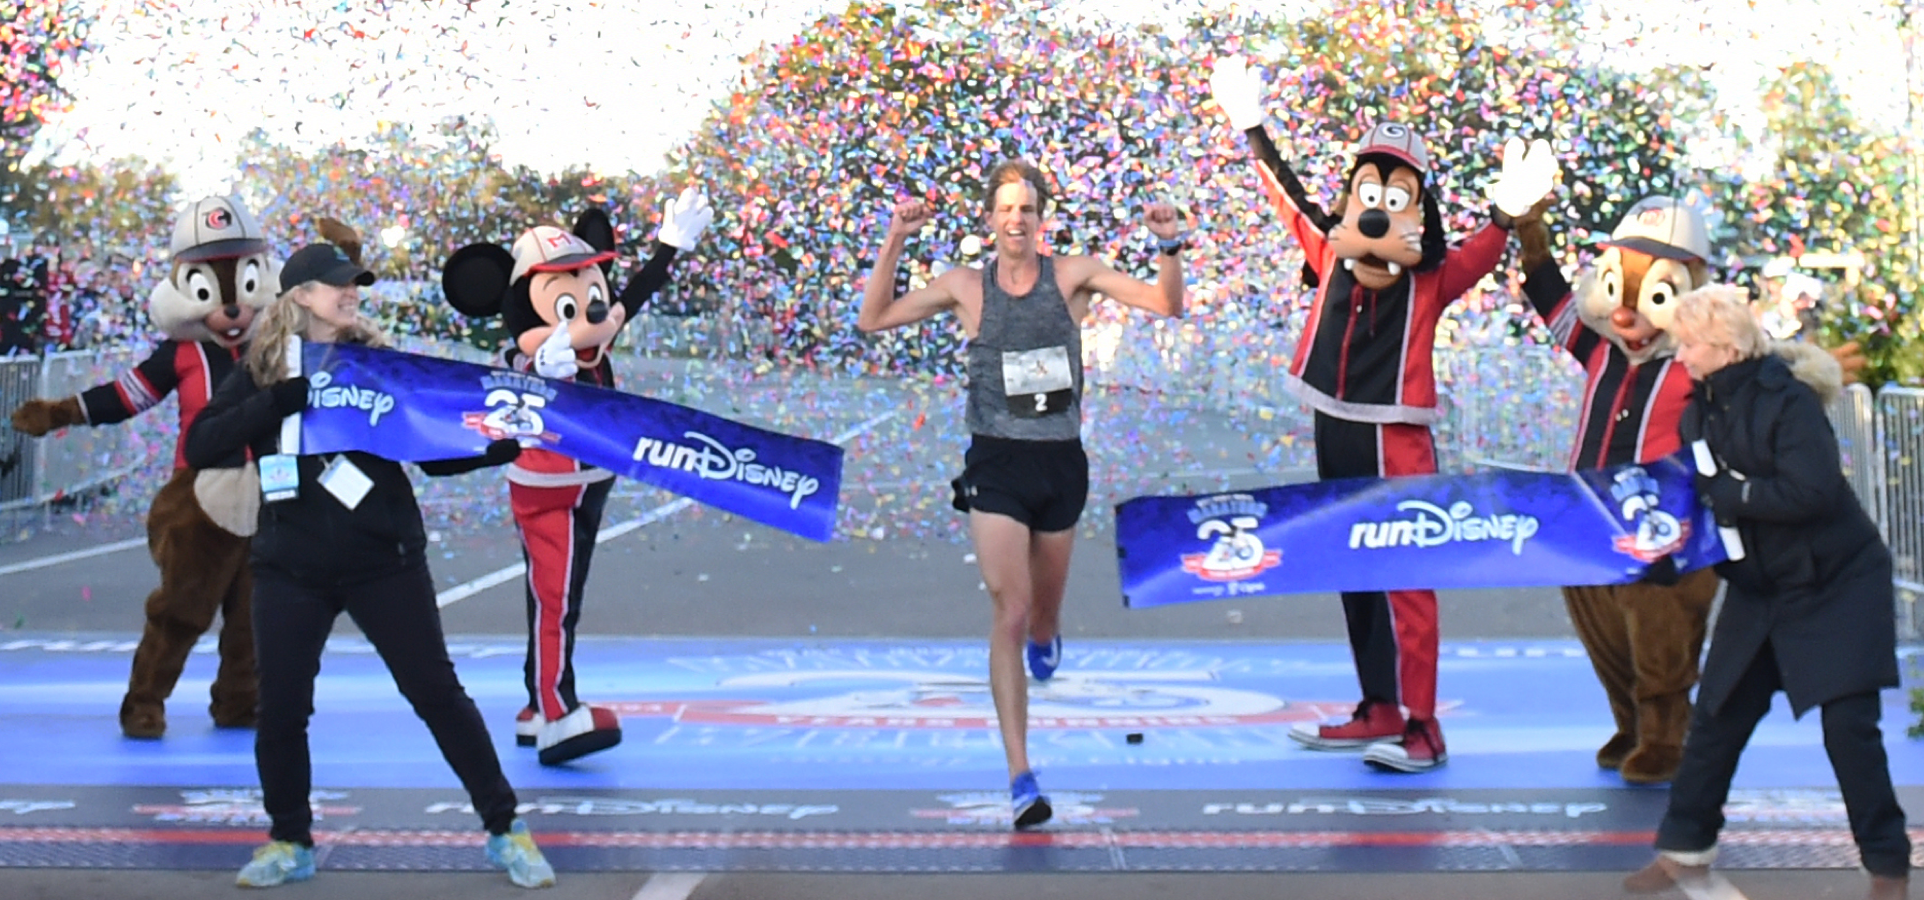 runDisney Marathons